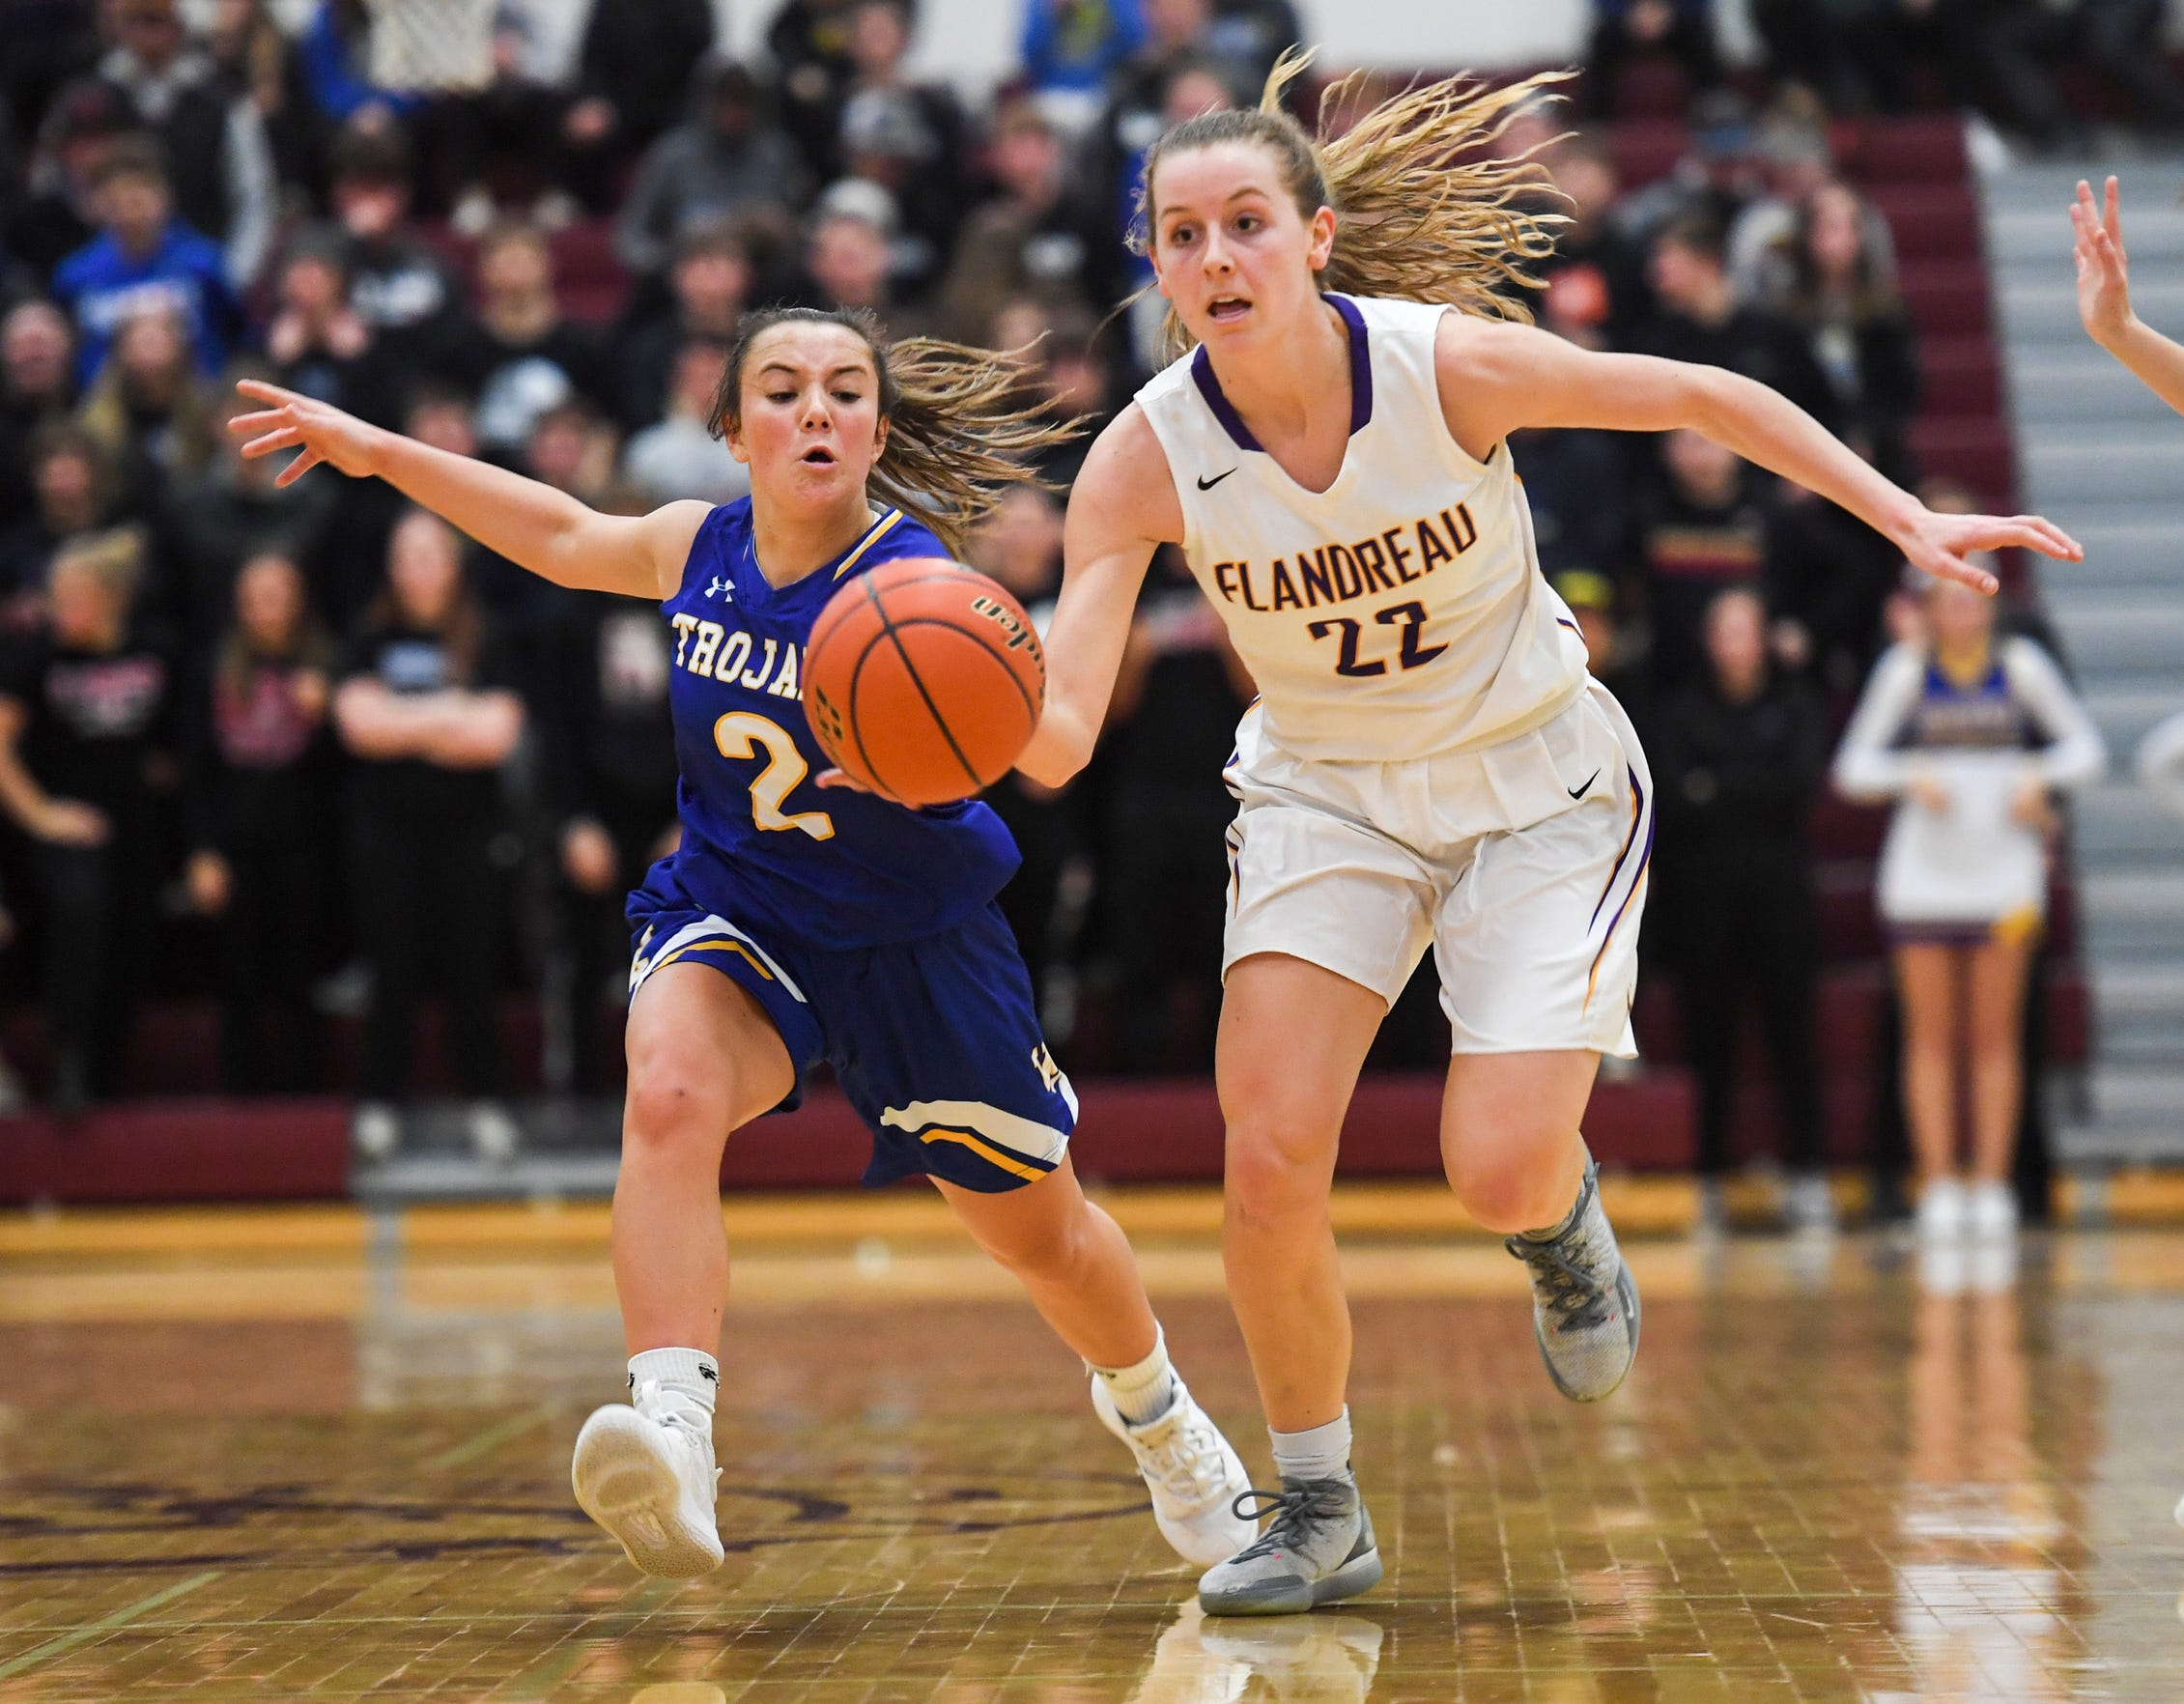 Flandreau's Hannah Parsley (22) drives the ball down the court during the SoDak 16 game against West Central on Monday, March 9, 2020 at Madison High School.